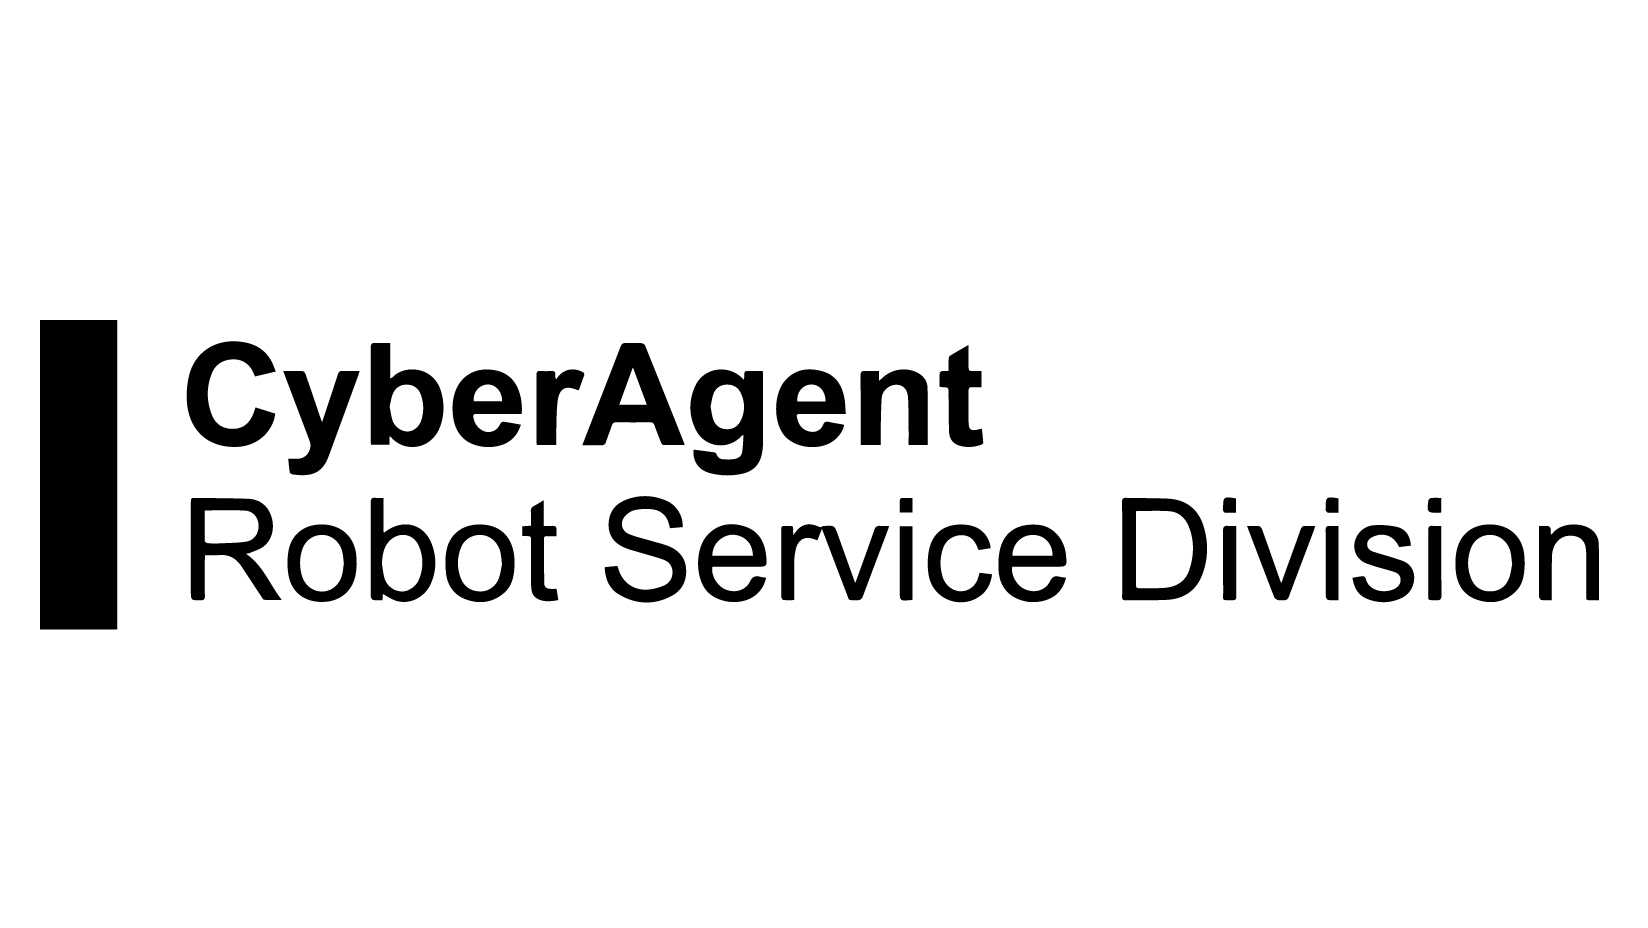 CyberAgent Robot Service Division